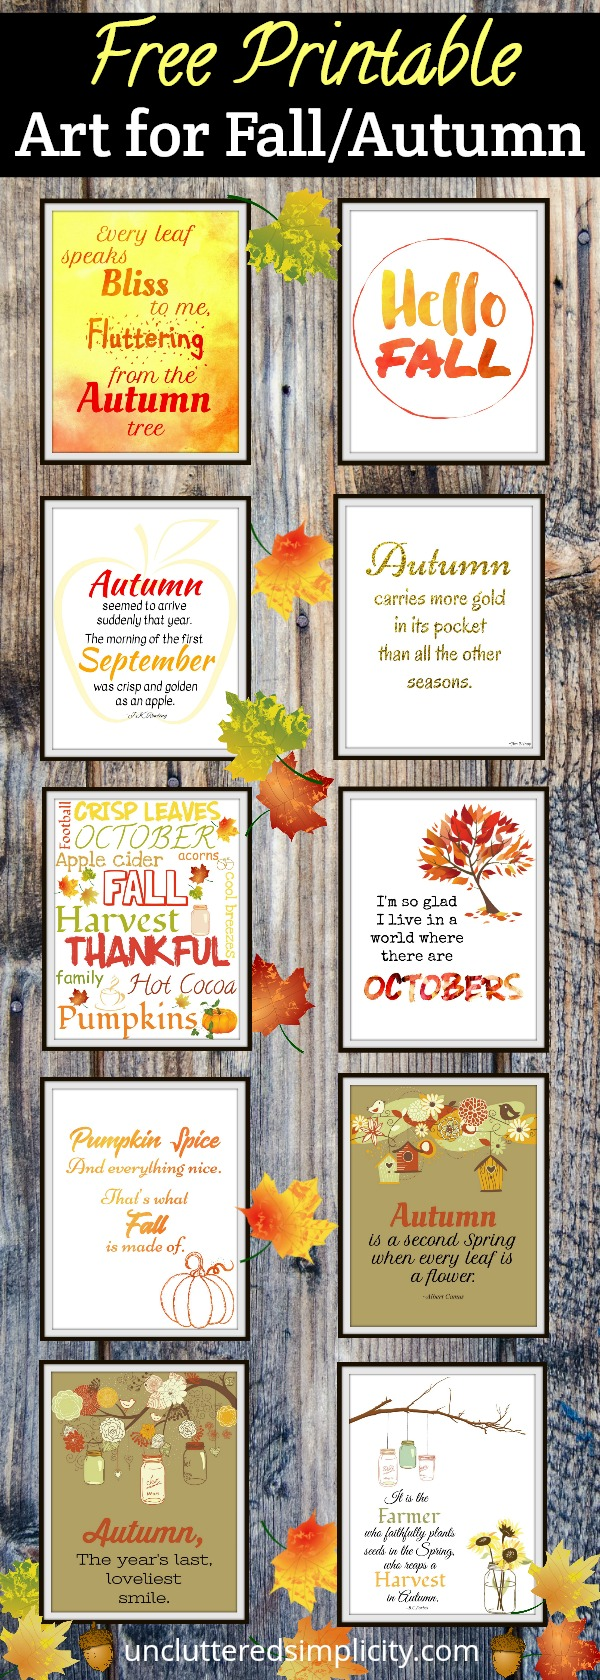 free fall printables | fall wall art | art for fall | autumn printables | free printables #fall #fallprintables